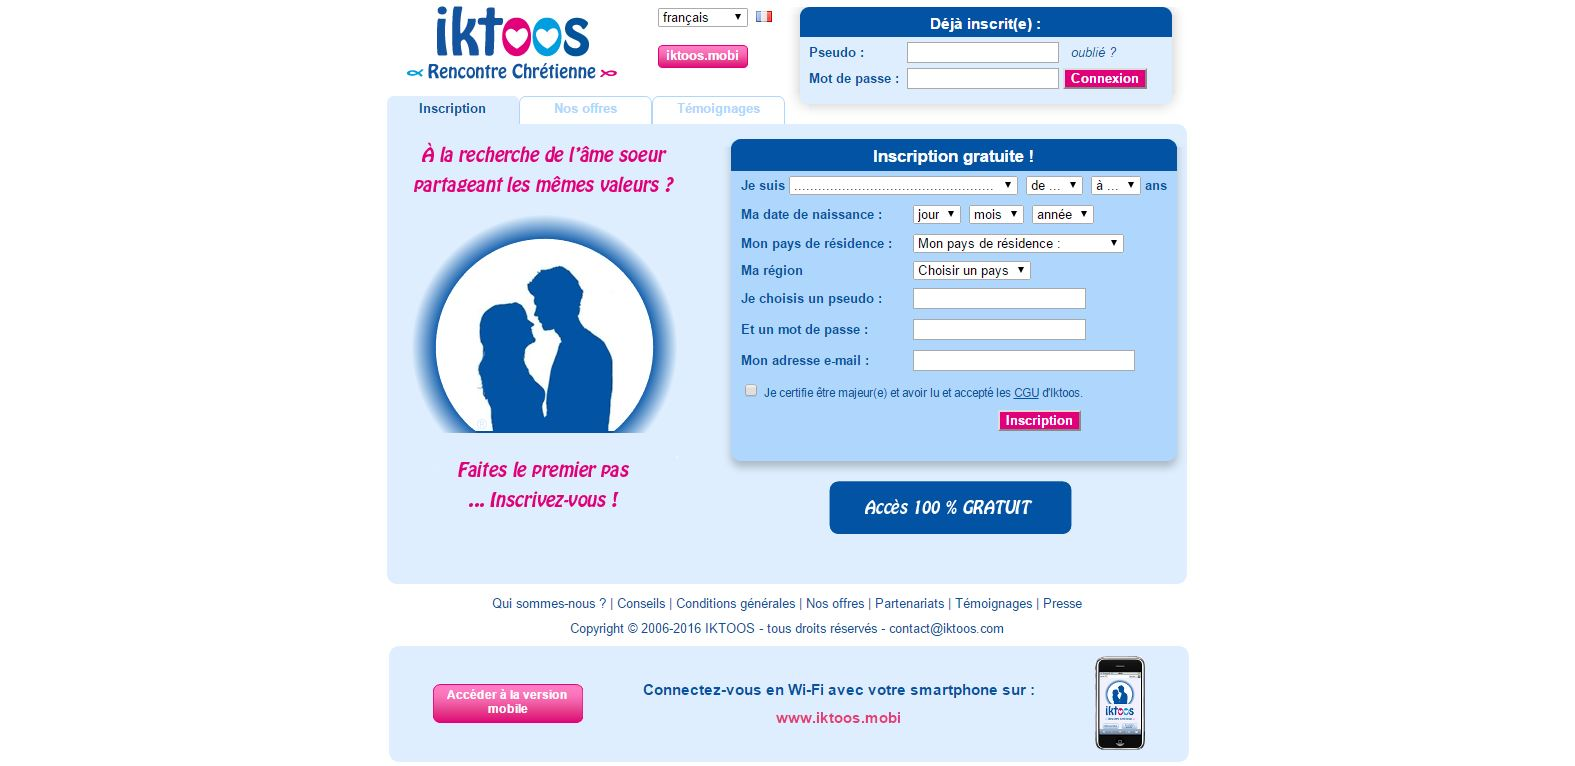 Les sites de rencontre en france